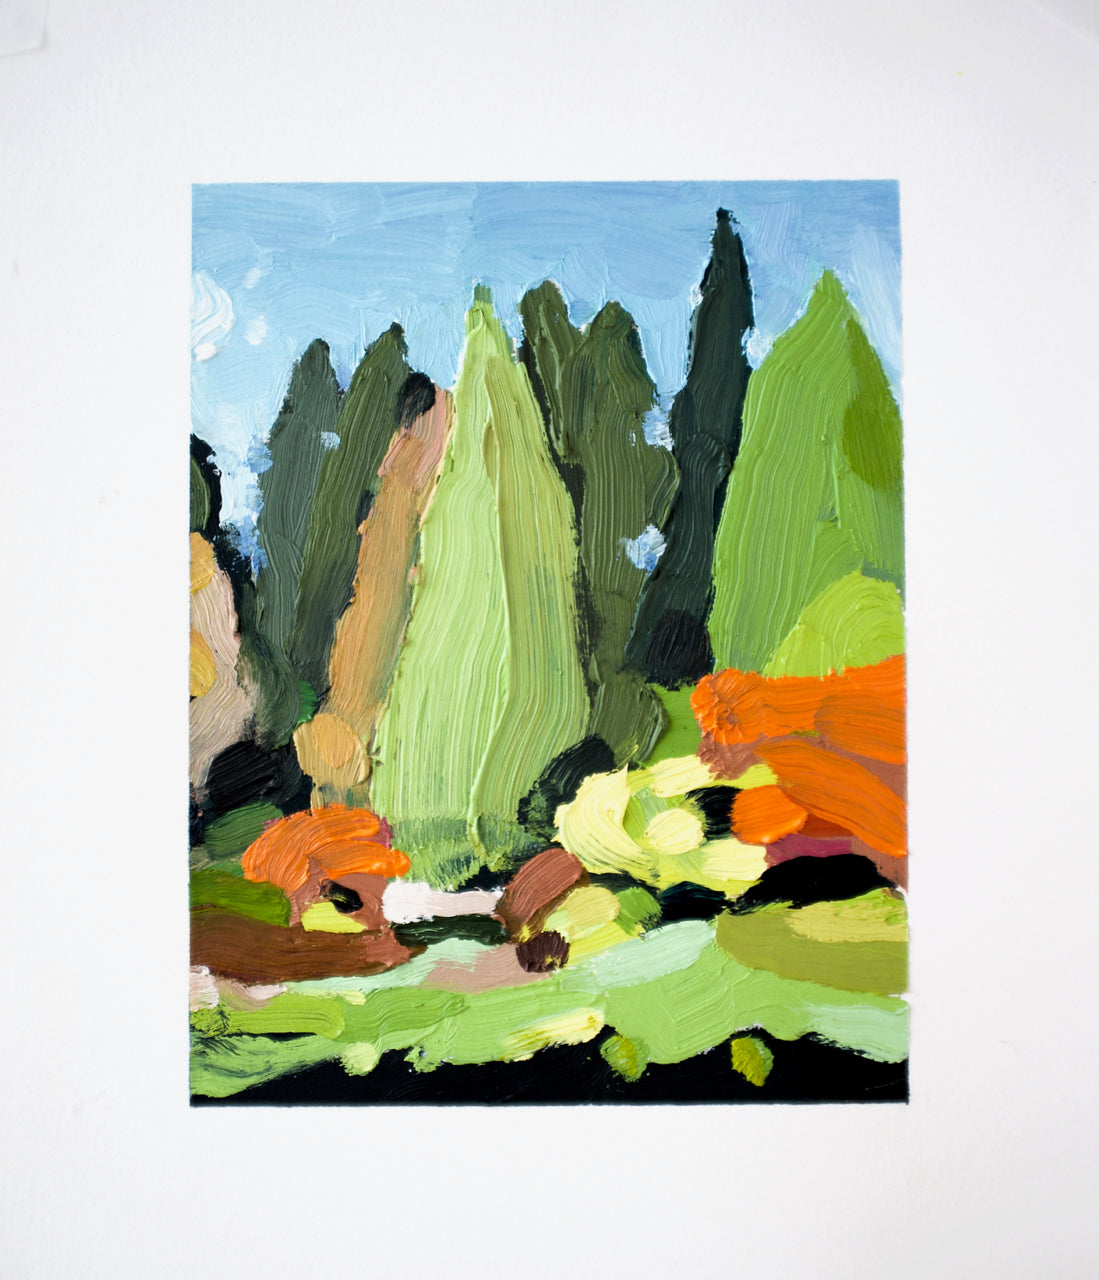 Landscape (Arboretum #15) Paintings David Coleridge Ryan- Portfolio2 Gallery